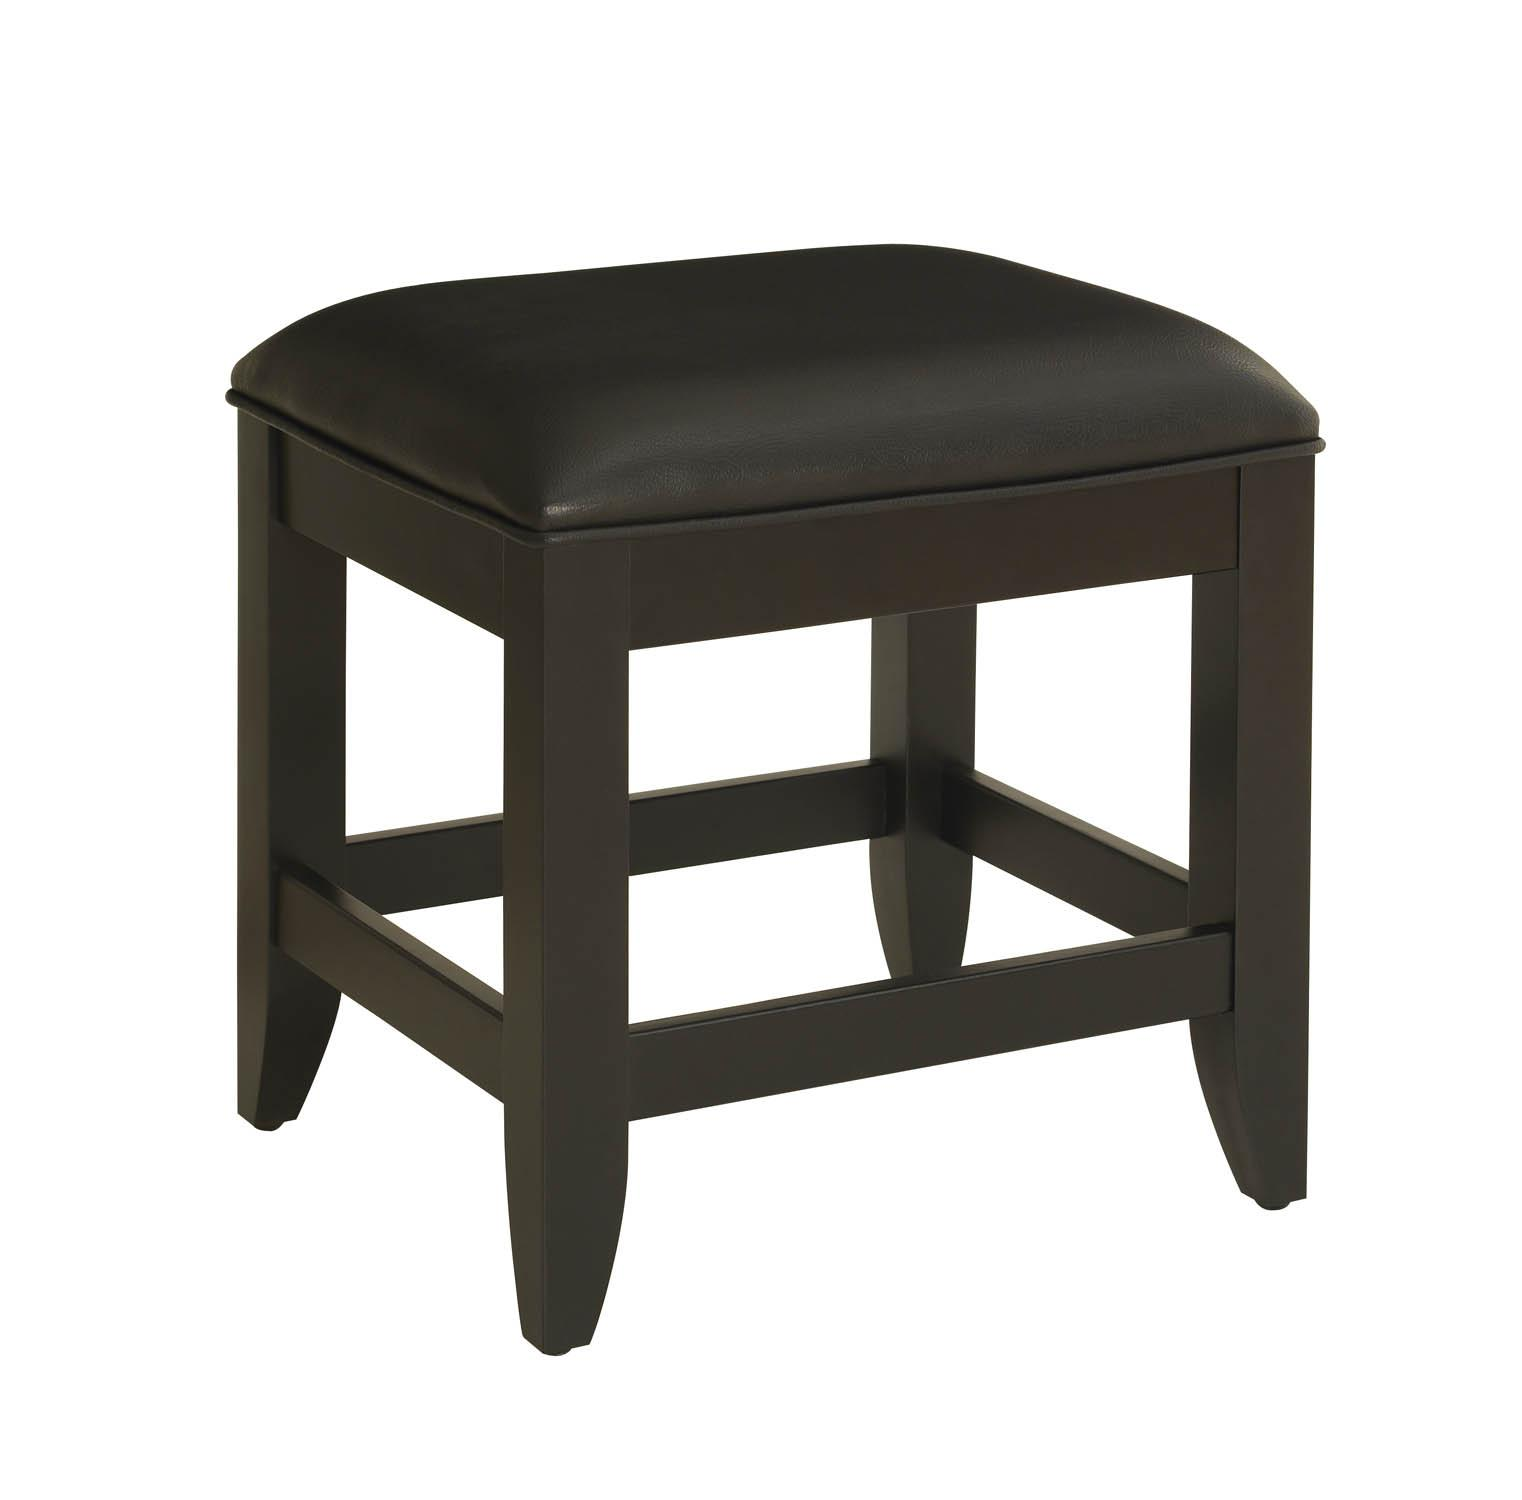 Vanity Stools Or Benches Home Styles Bedford Black Vanity Bench By Oj Commerce 5531